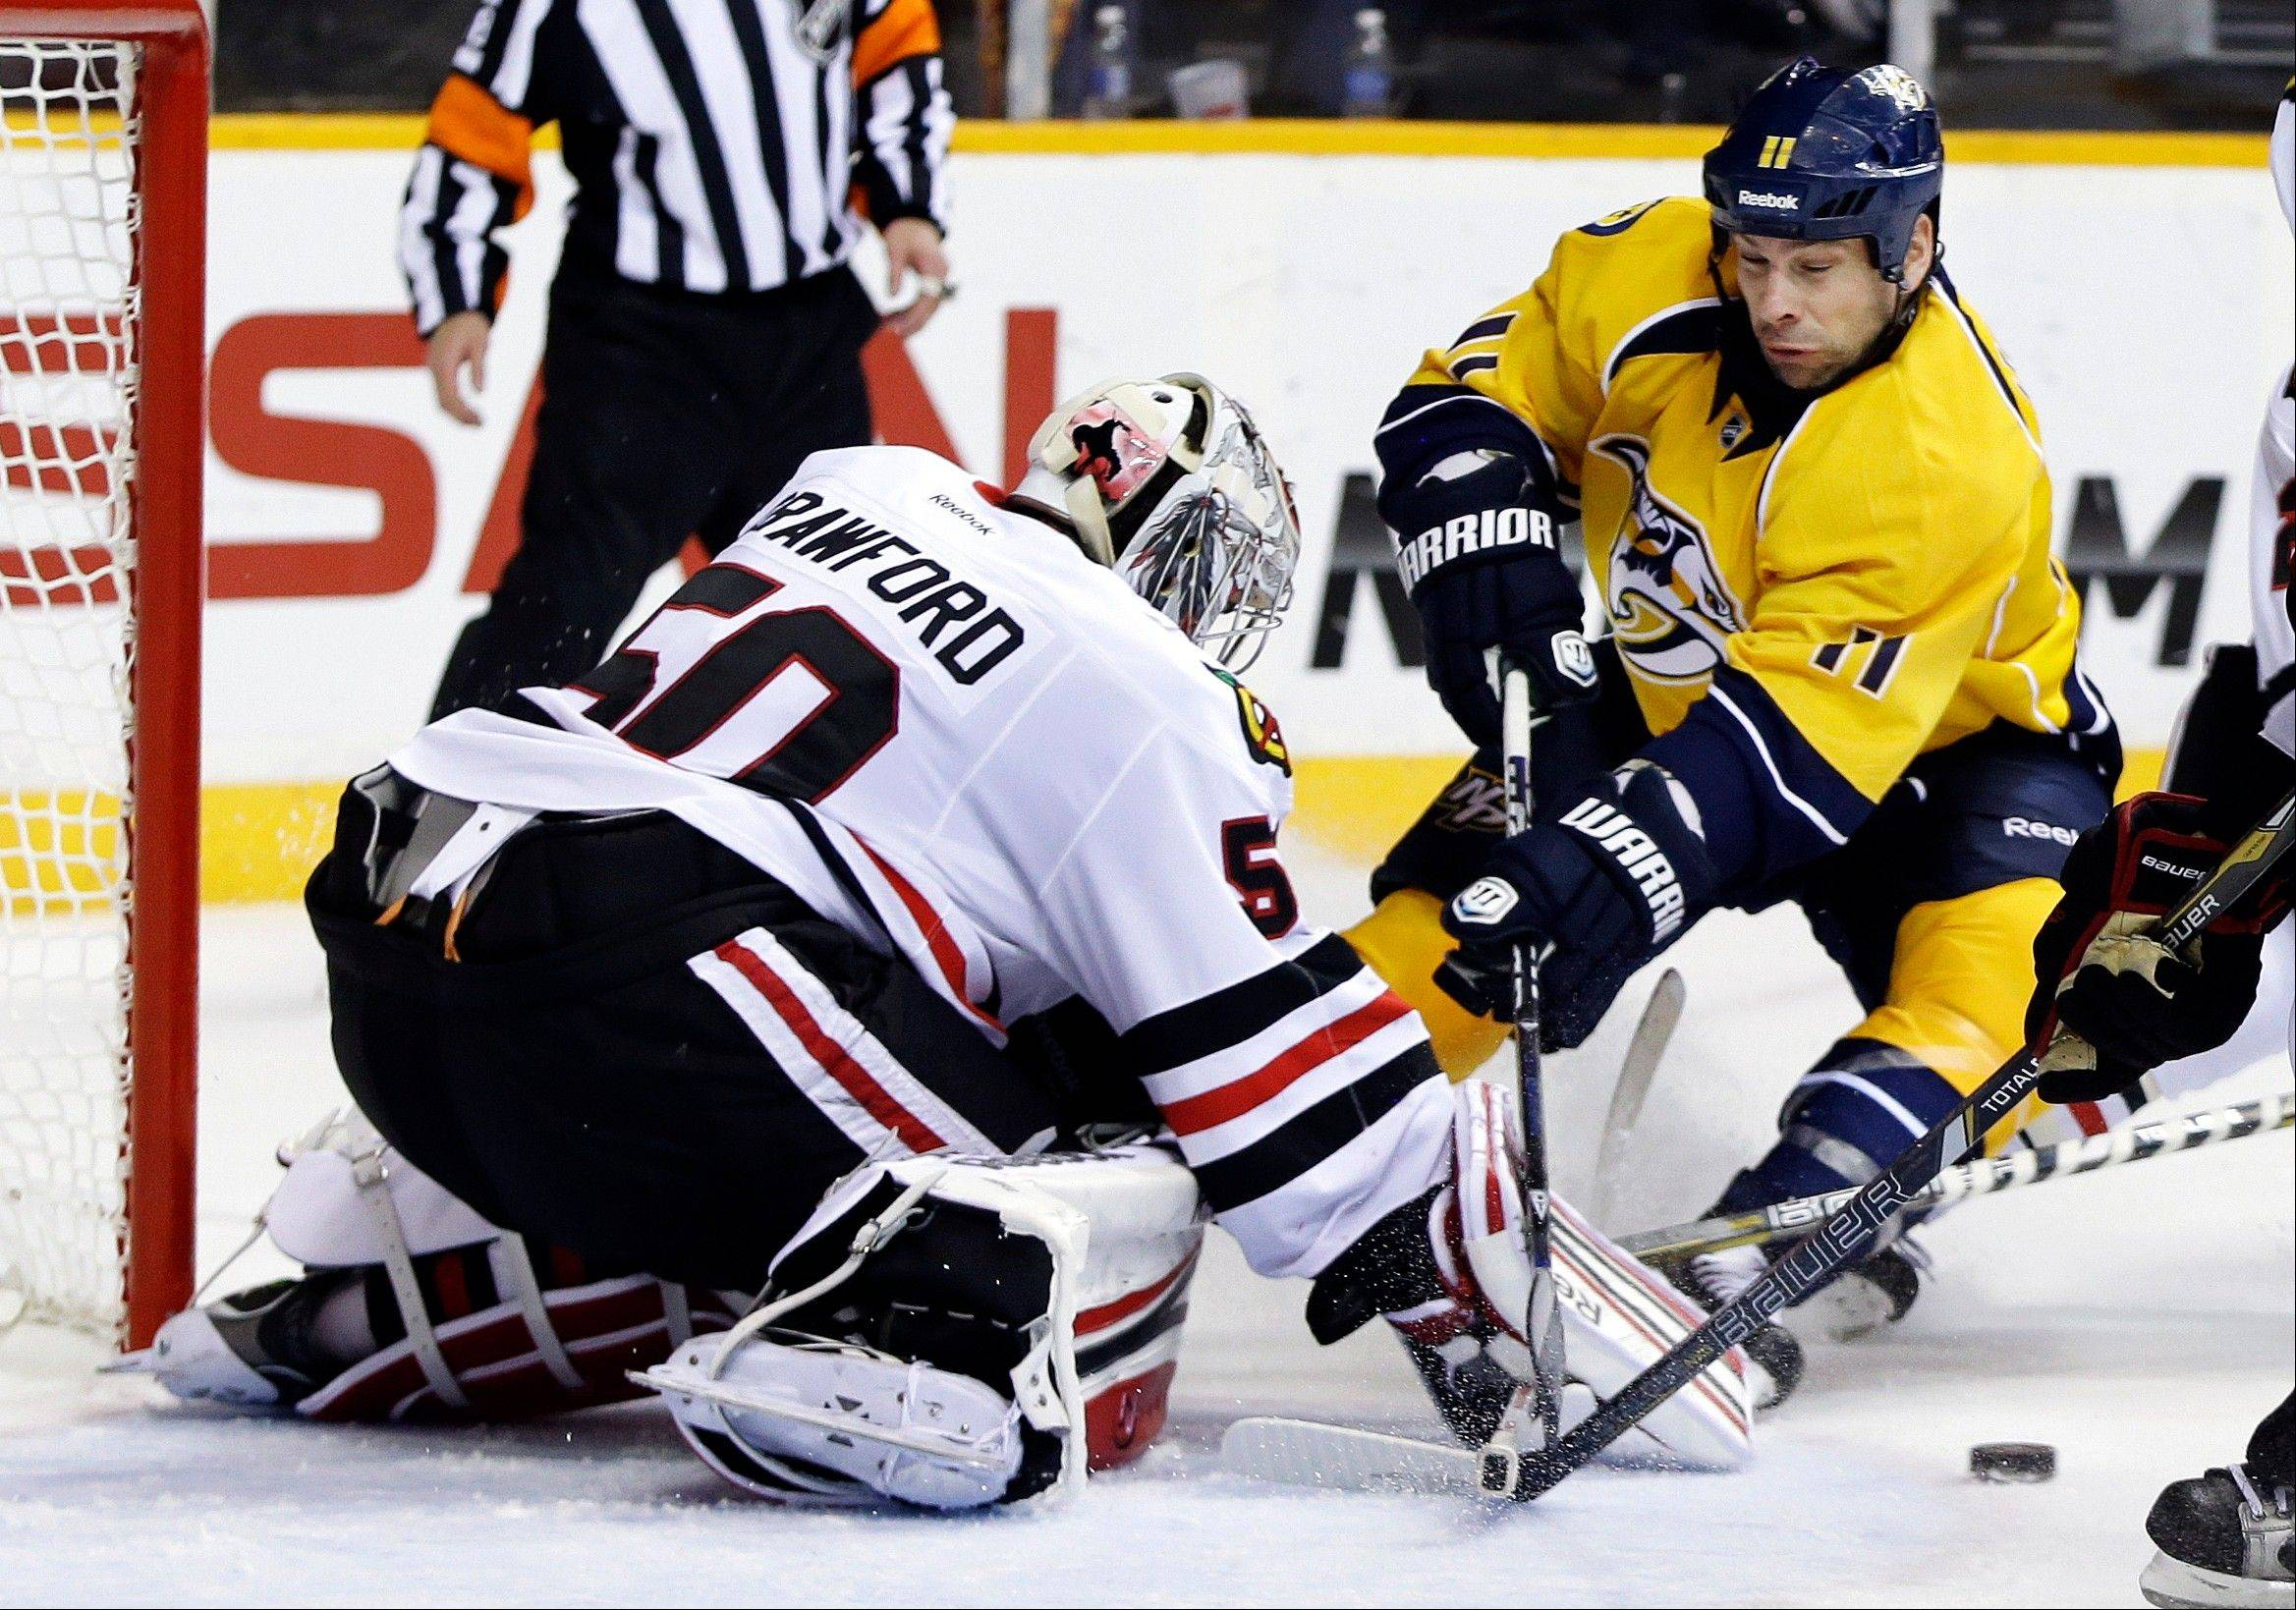 Blackhawks goalie Corey Crawford blocks a shot by Predators center David Legwand in the second period on Sunday at Nashville.